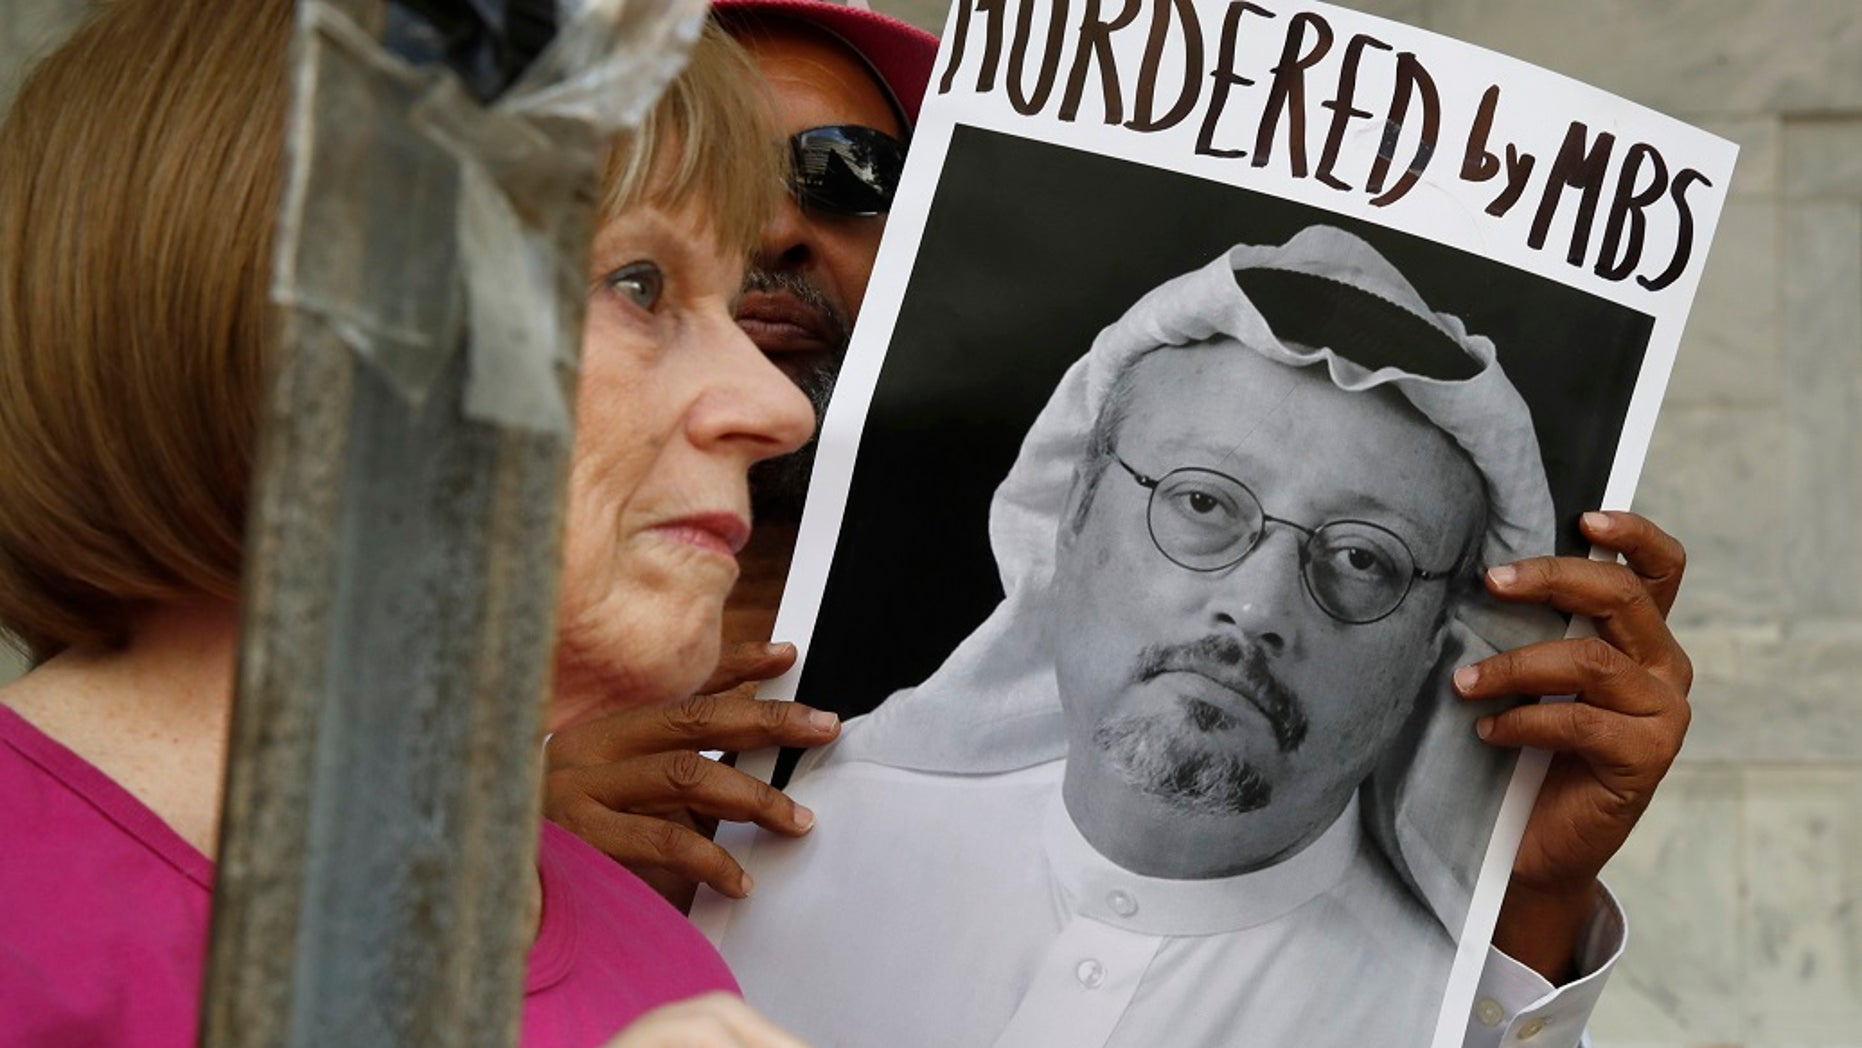 FILE - People hold signs during a protest at the Embassy of Saudi Arabia about the disappearance of Saudi journalist Jamal Khashoggi. in Washington.